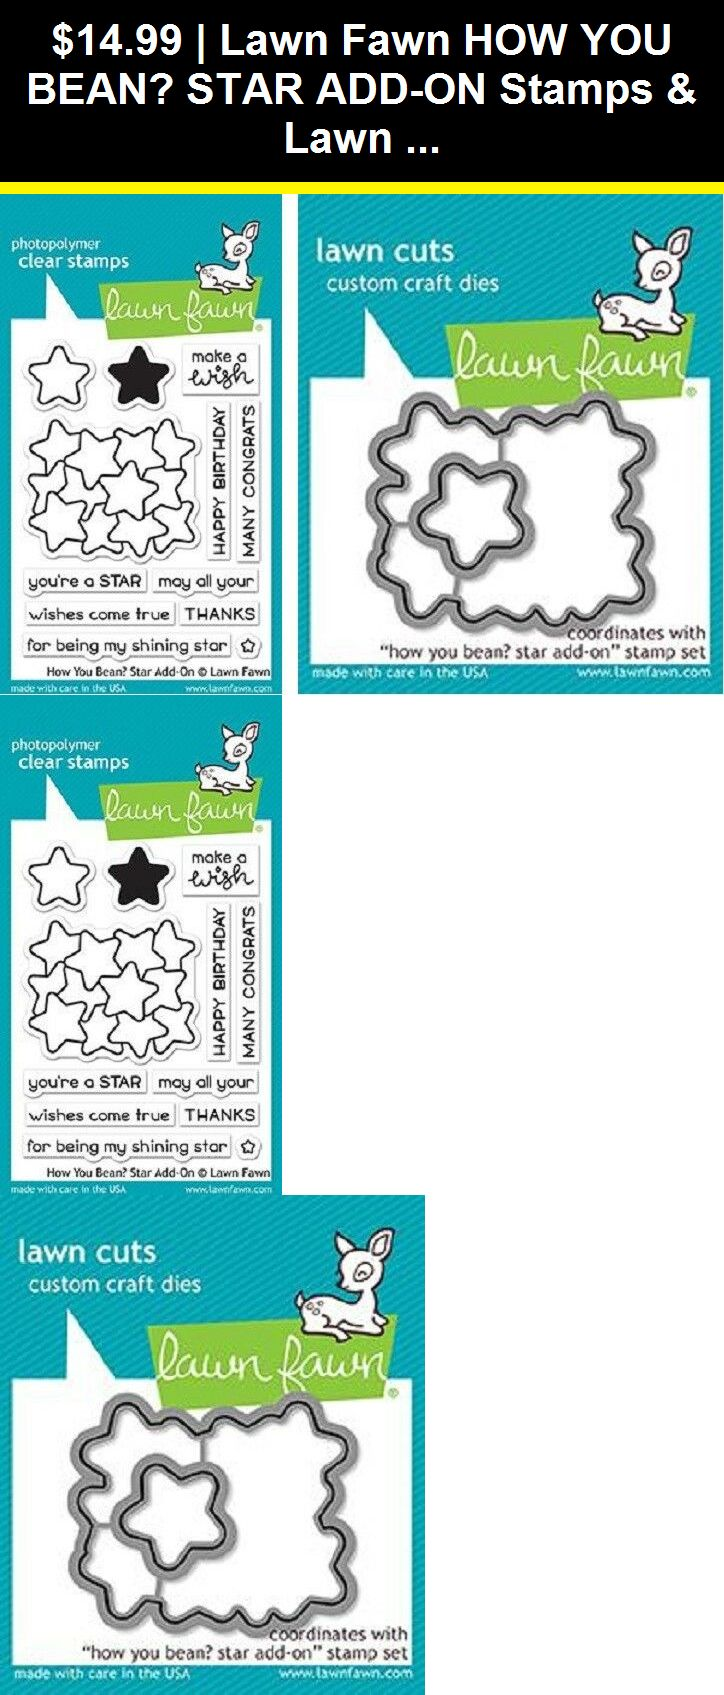 Stamping And Embossing 3122 Lawn Fawn How You Bean Star